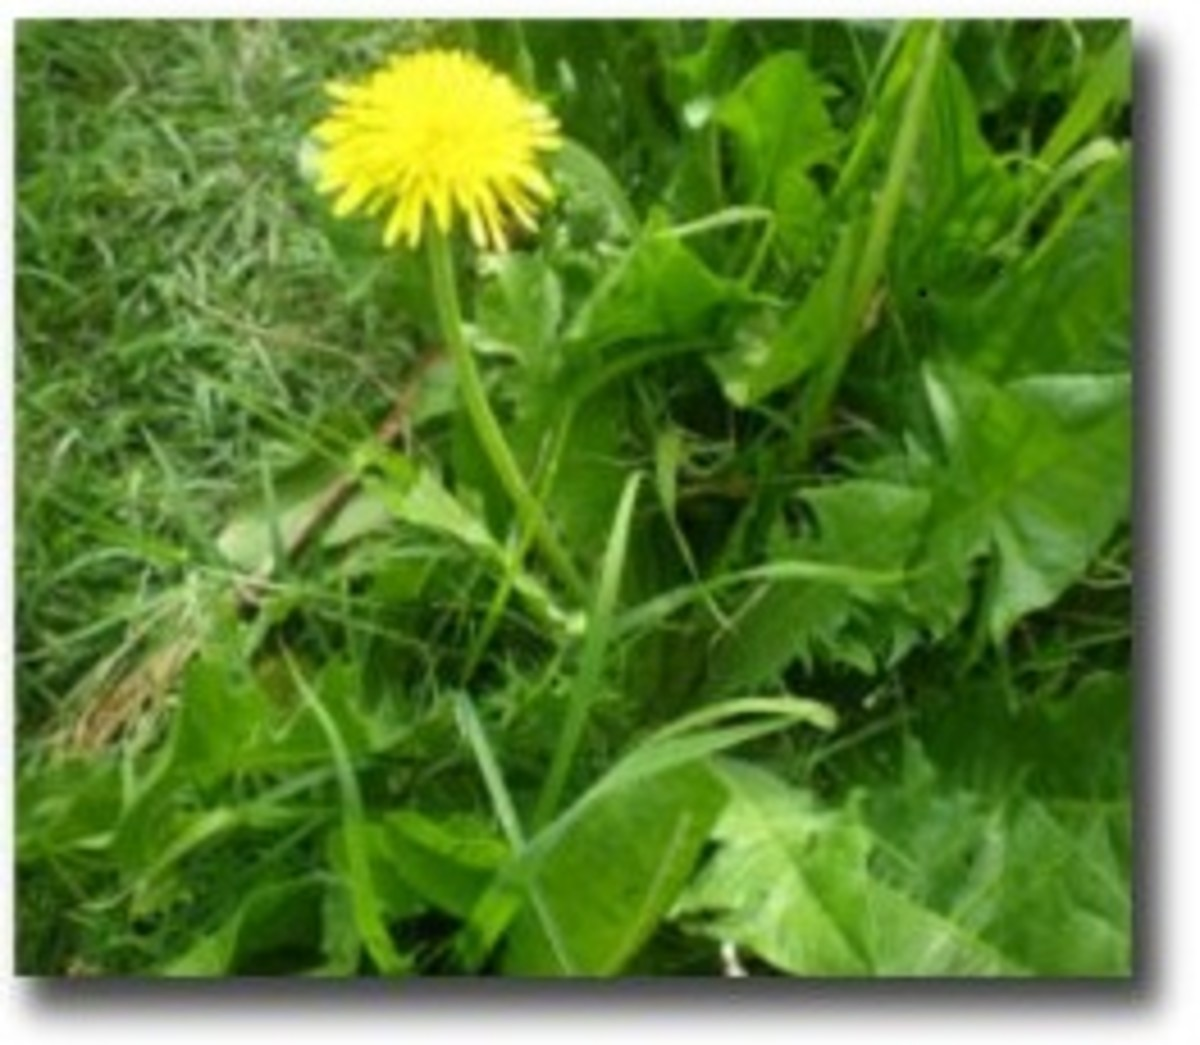 How to identify dandelion